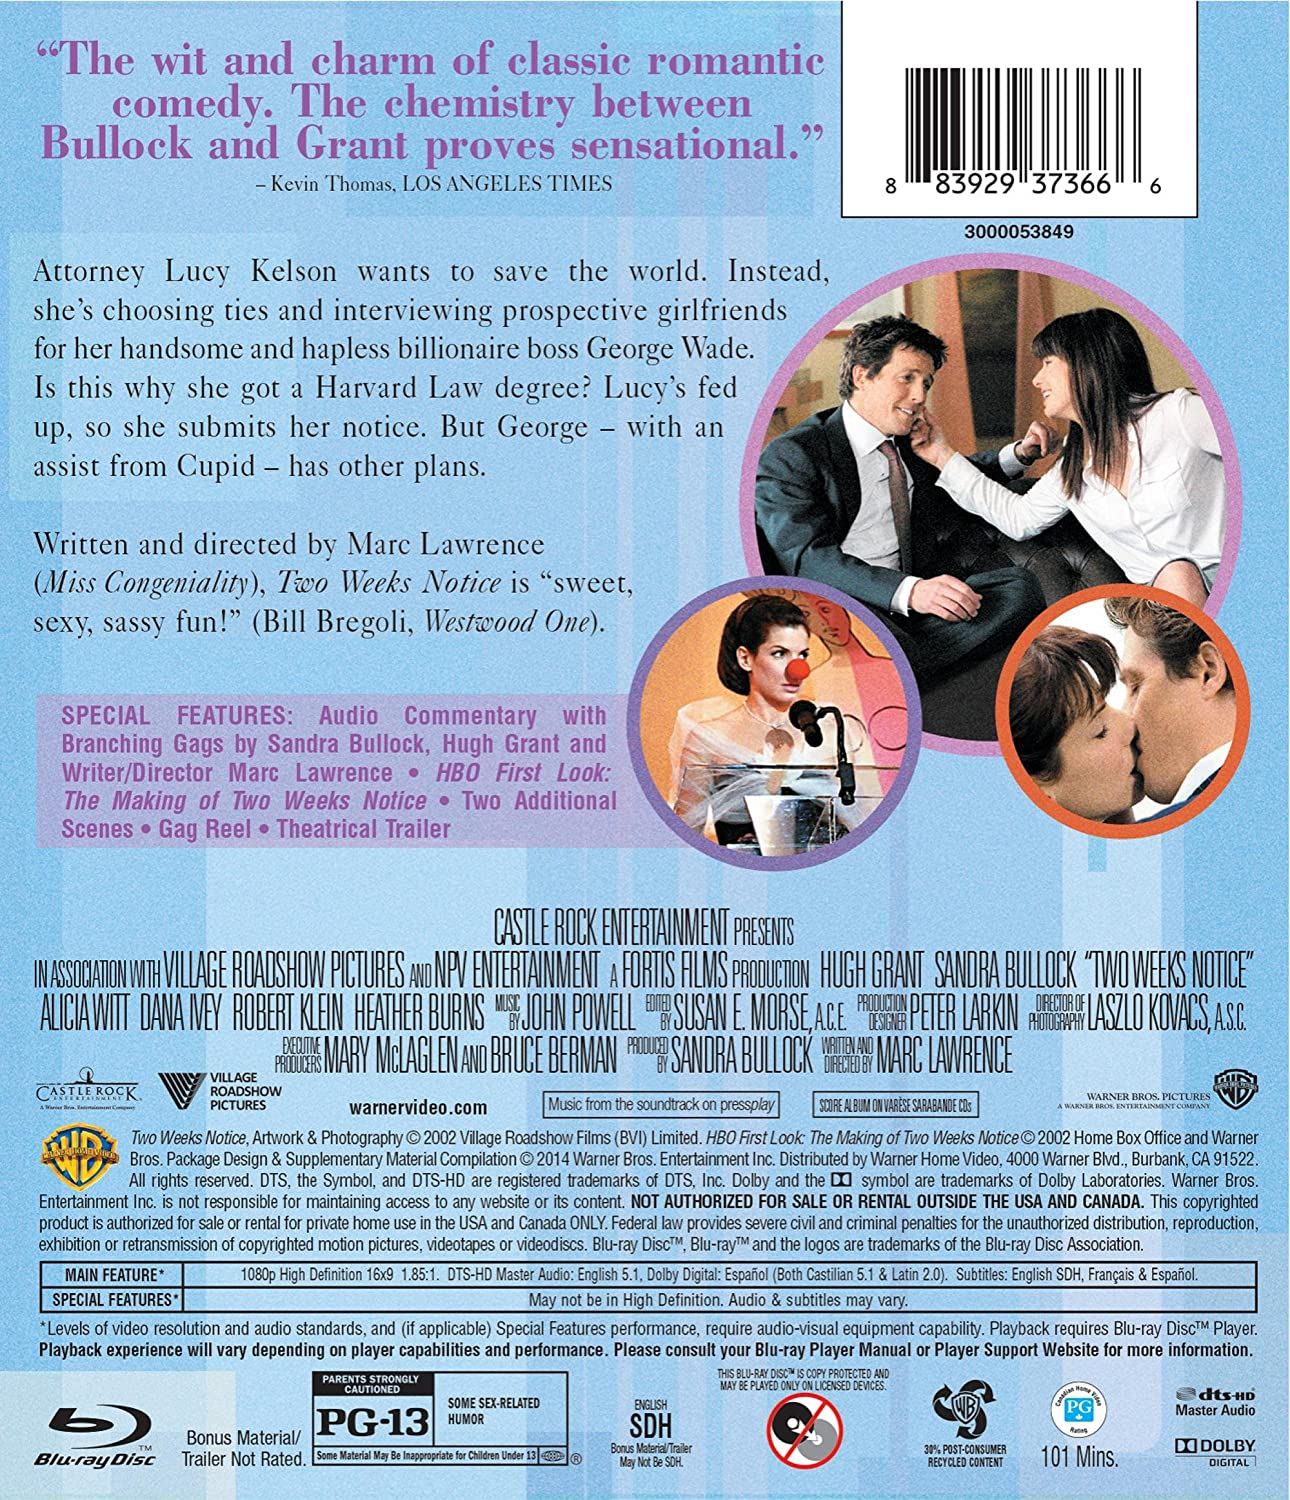 amazon com two weeks notice bd blu ray hugh grant sandra amazon com two weeks notice bd blu ray hugh grant sandra bullock alicia witt dana ivey robert klein heather burns david haig dorian missick